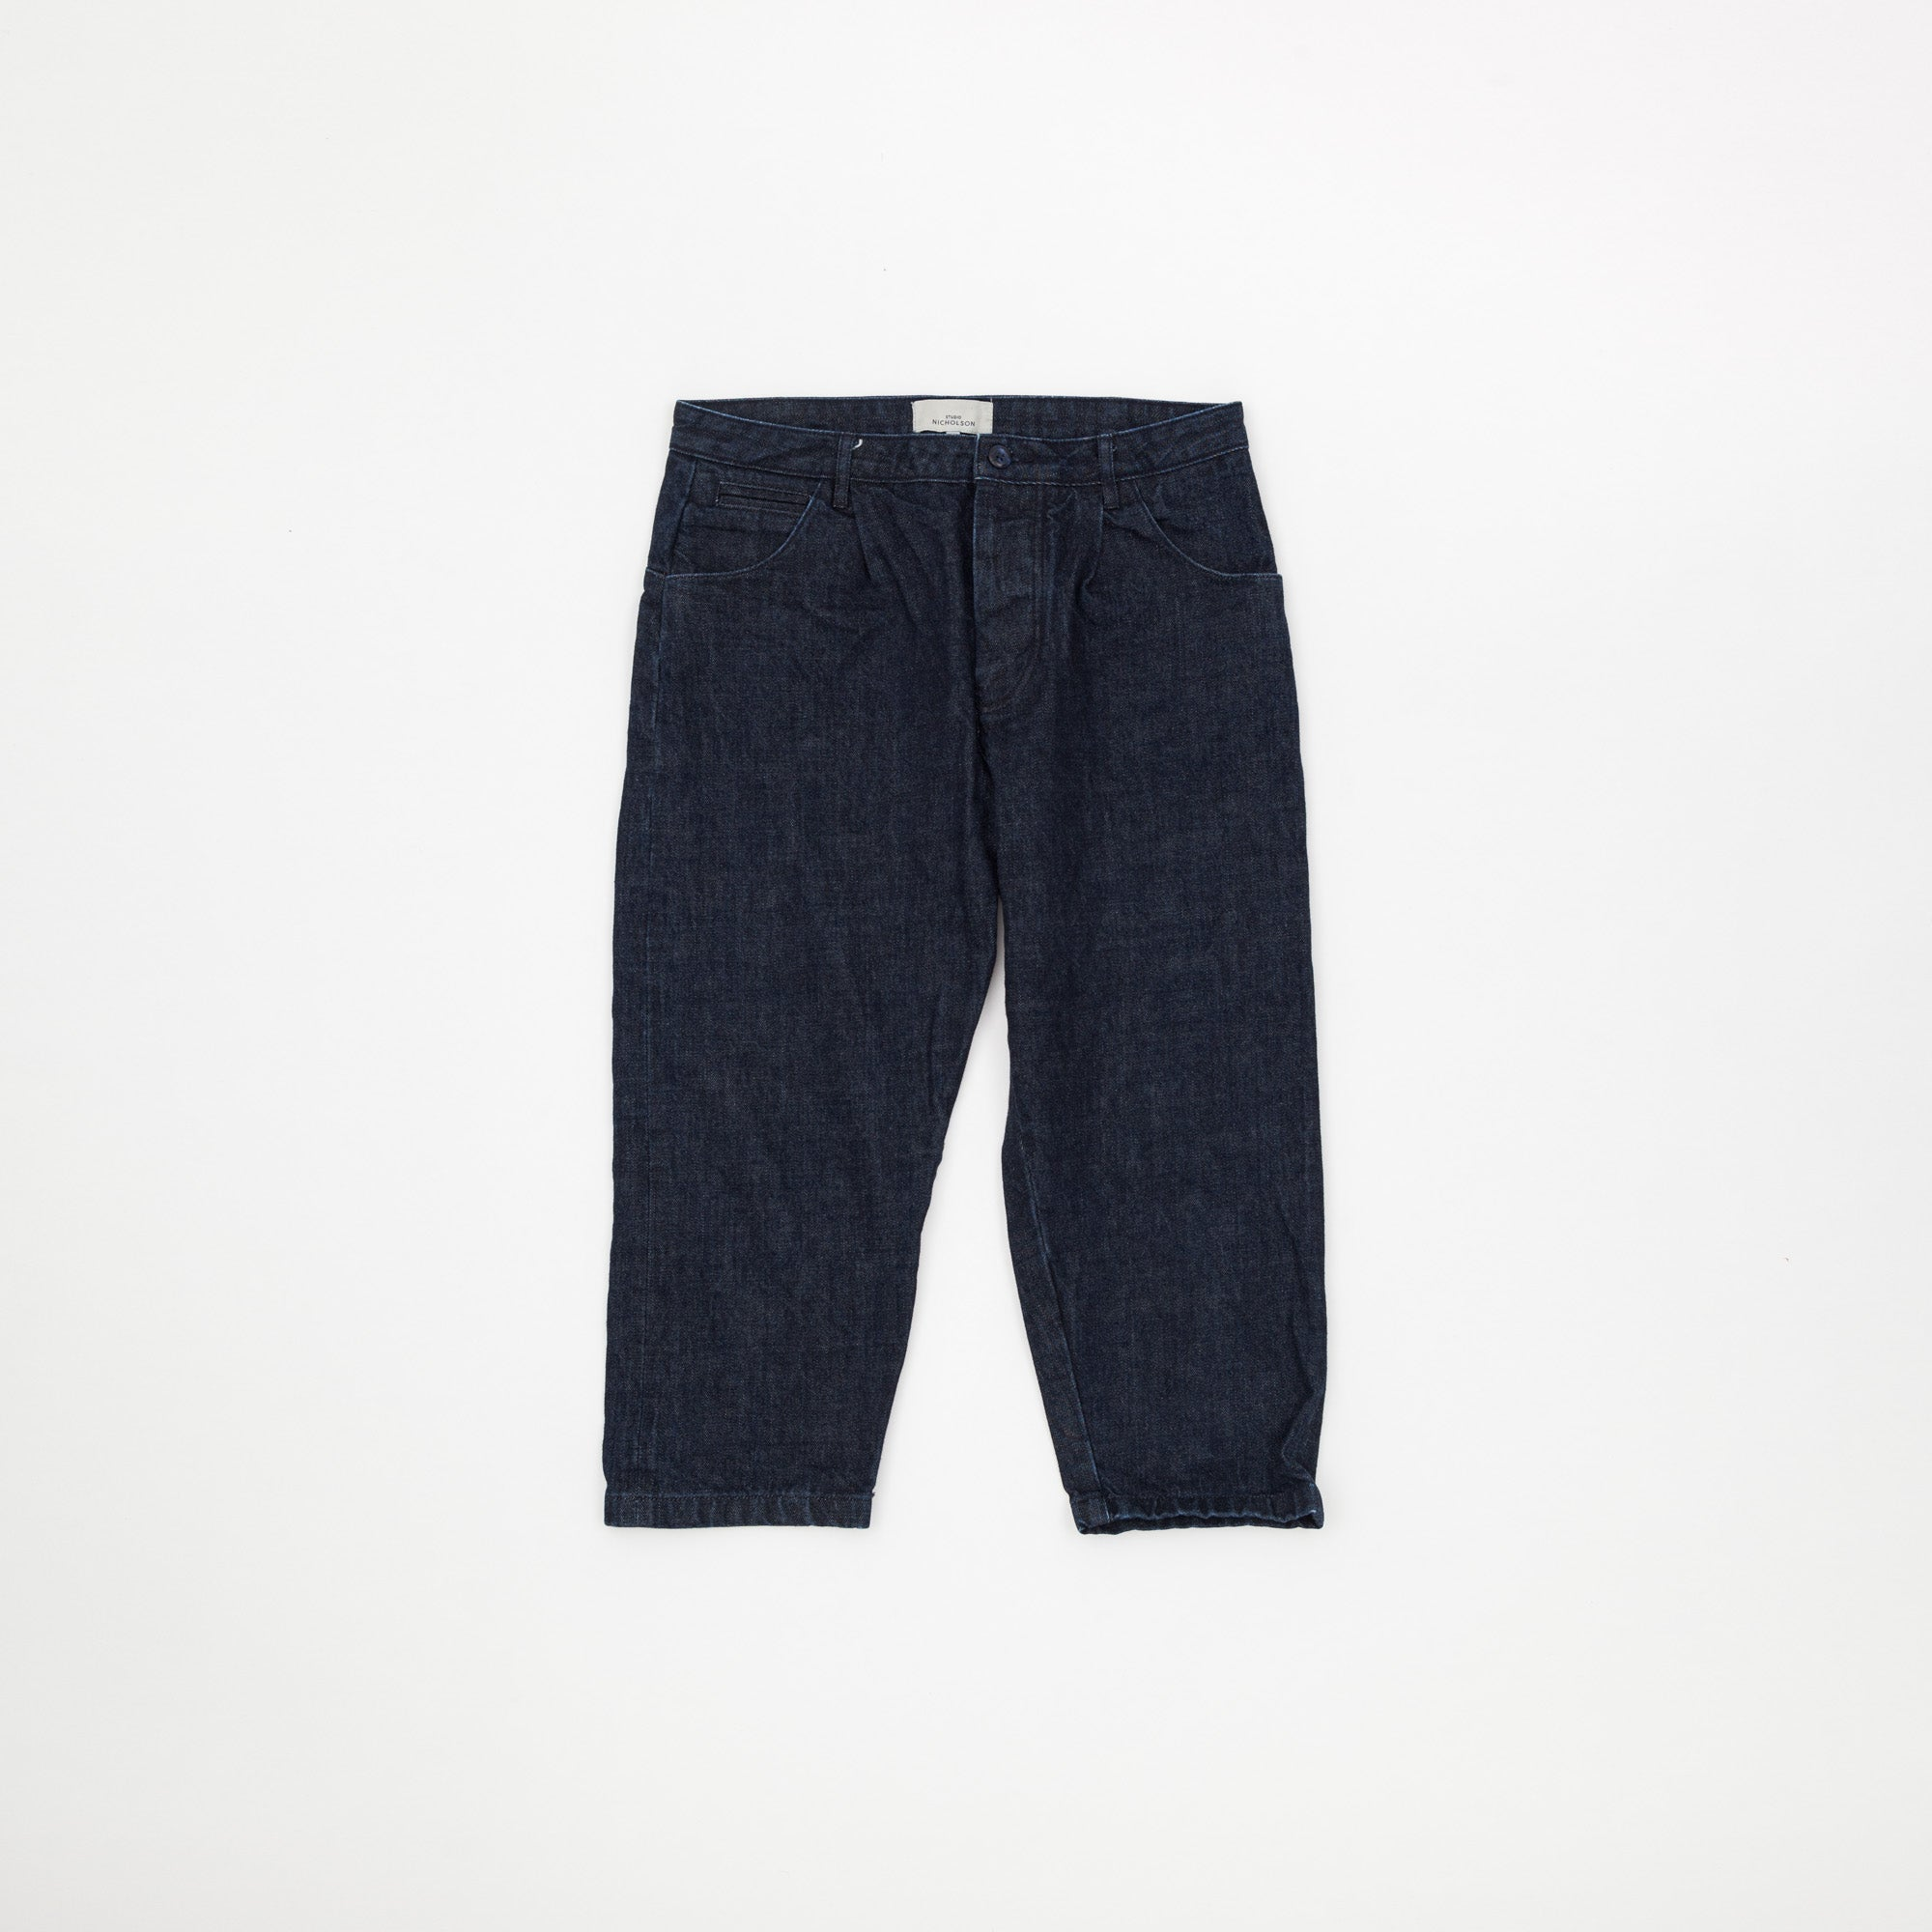 Women's 3/4 Denim Jeans